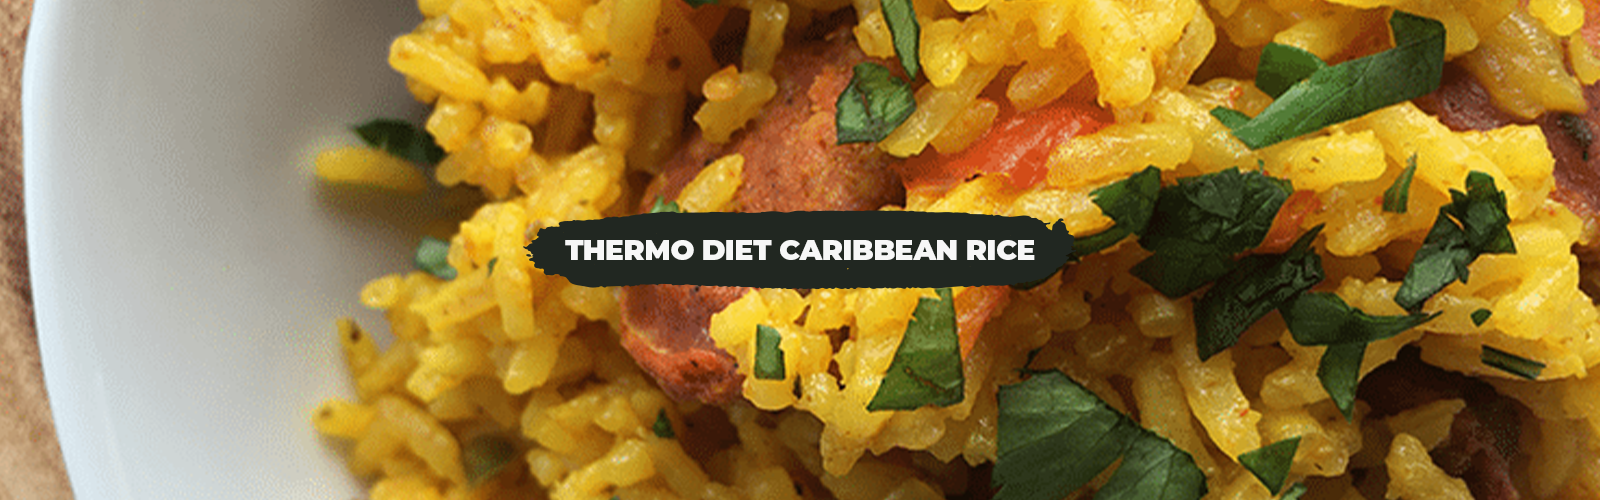 Thermo Diet Caribbean Rice